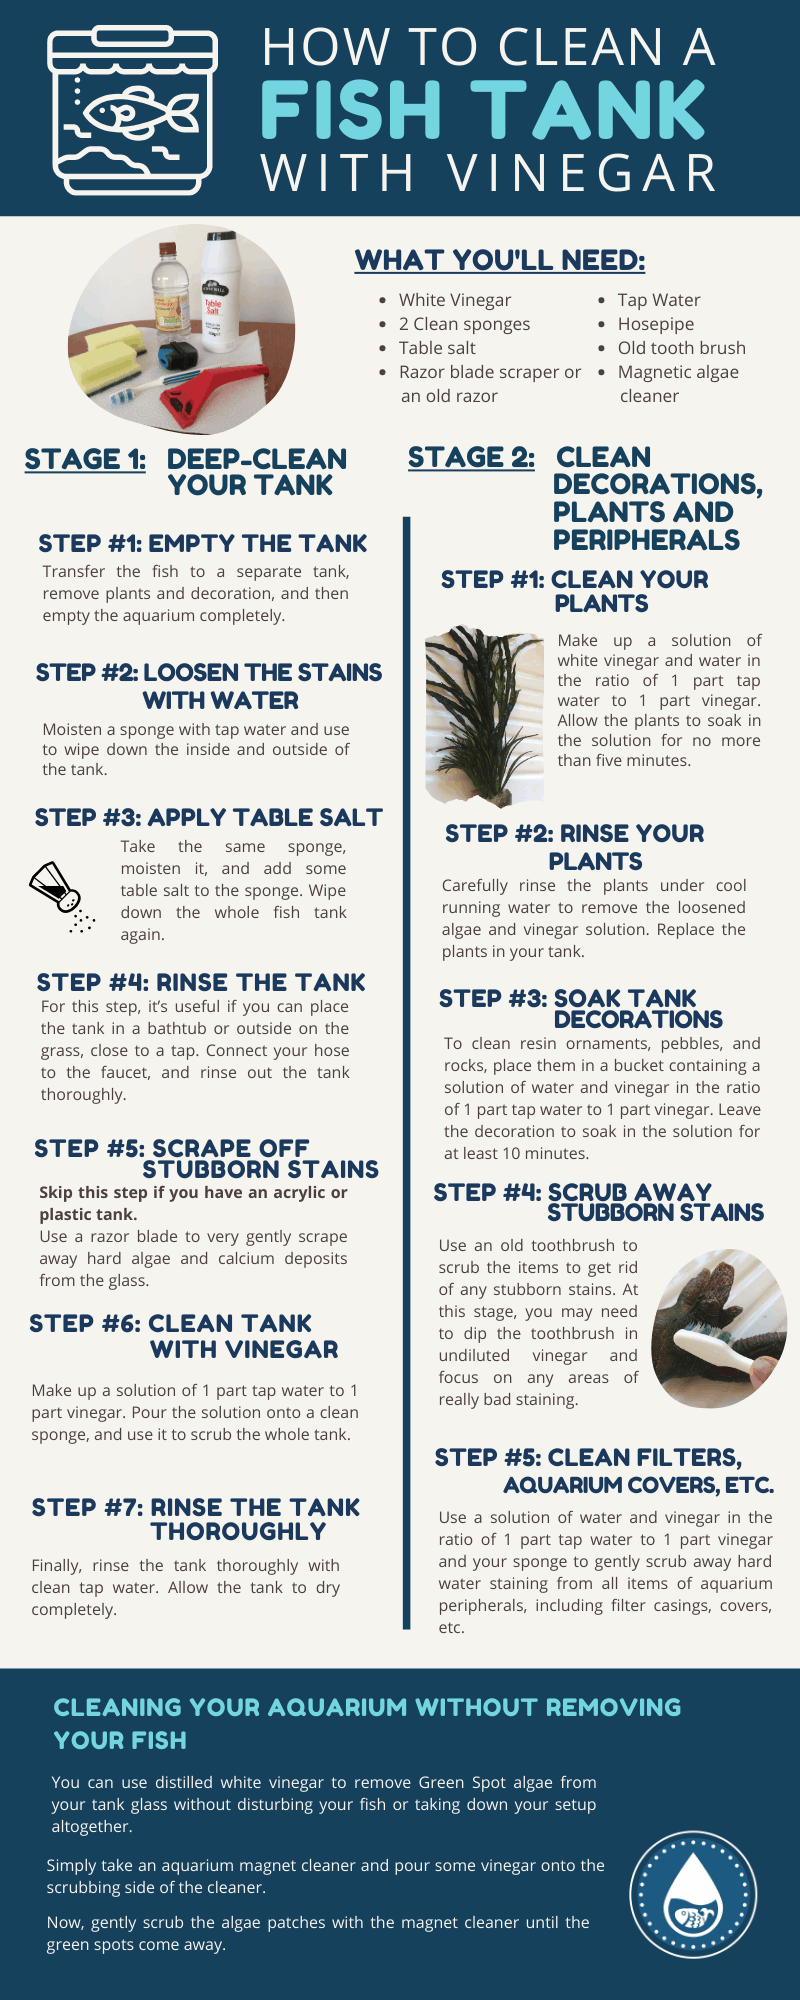 How To Clean a Fish Tank With Vinegar - Infographic